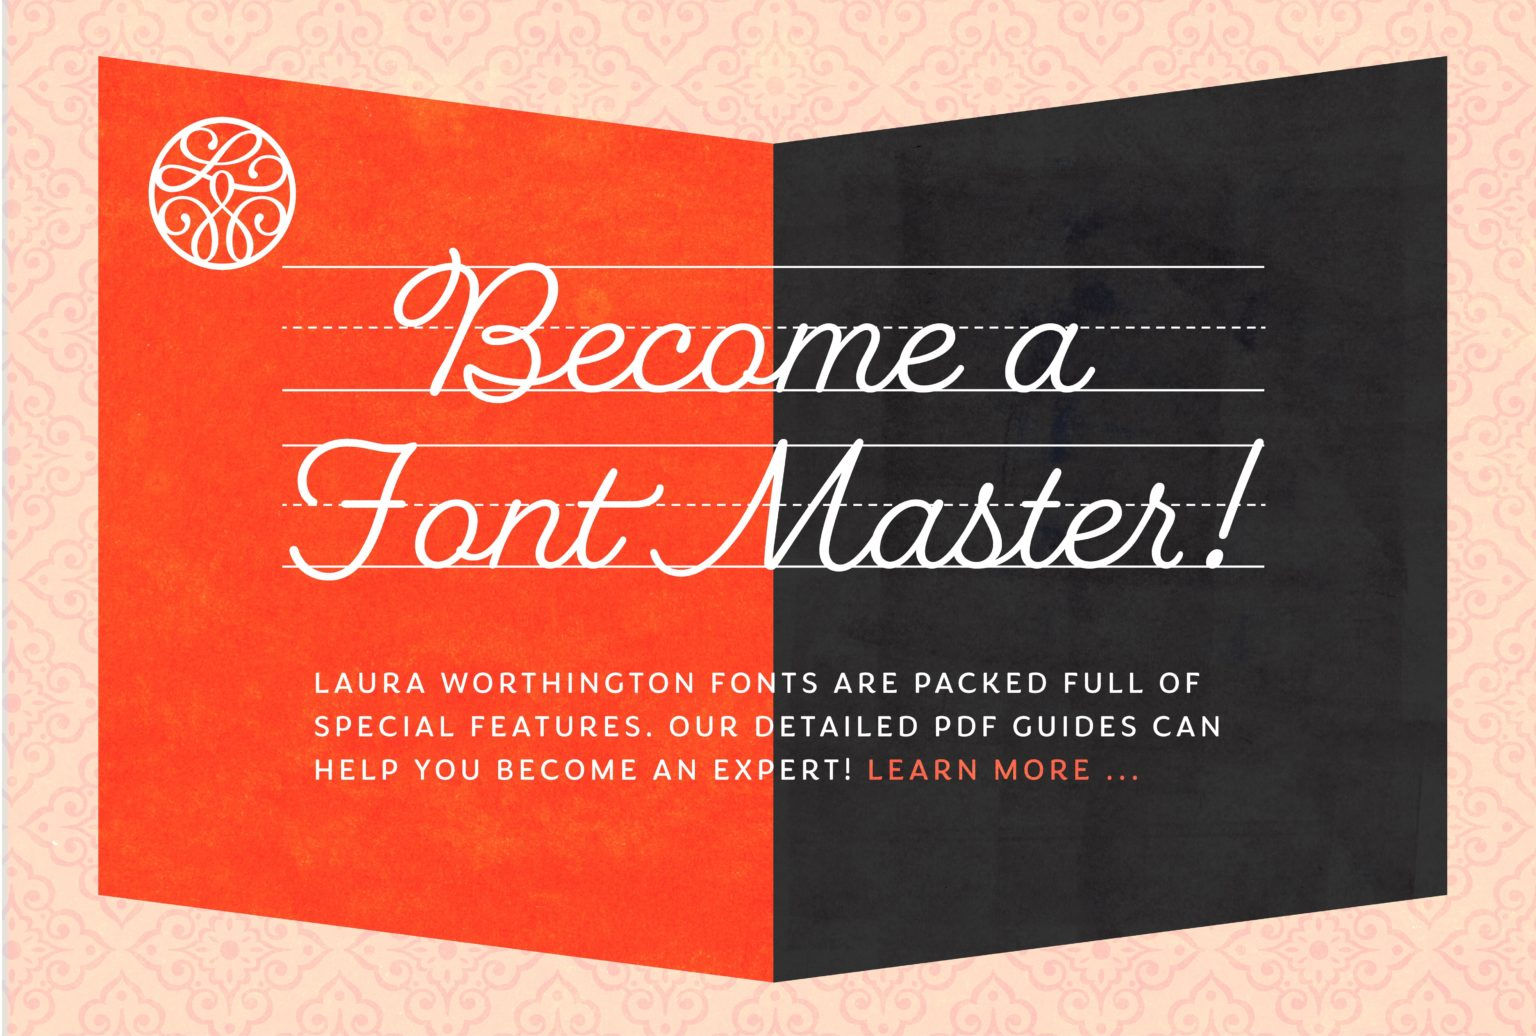 Become a Font Master! Laura Worthington fonts are packed full of special features. Our detailed PDF guides can help you become an expert! Learn more…